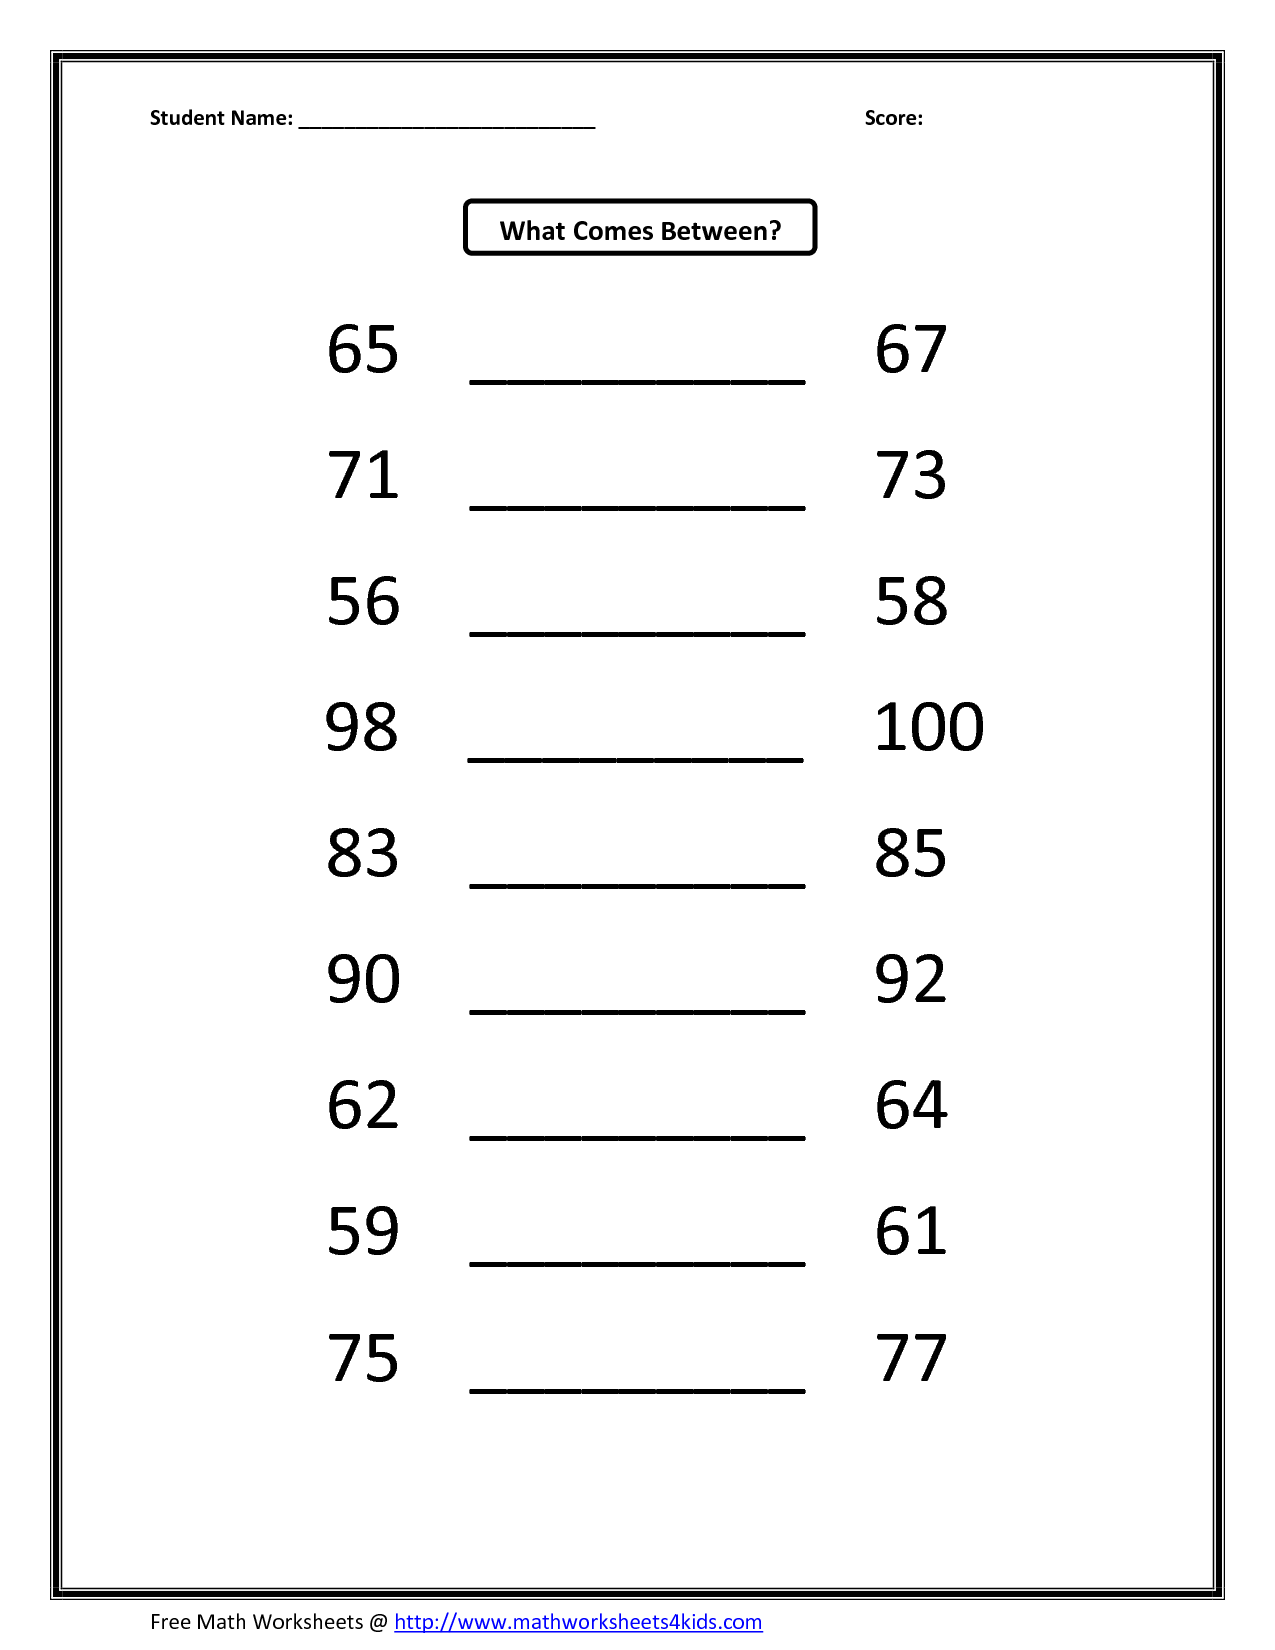 Kumon Math Worksheets Answers